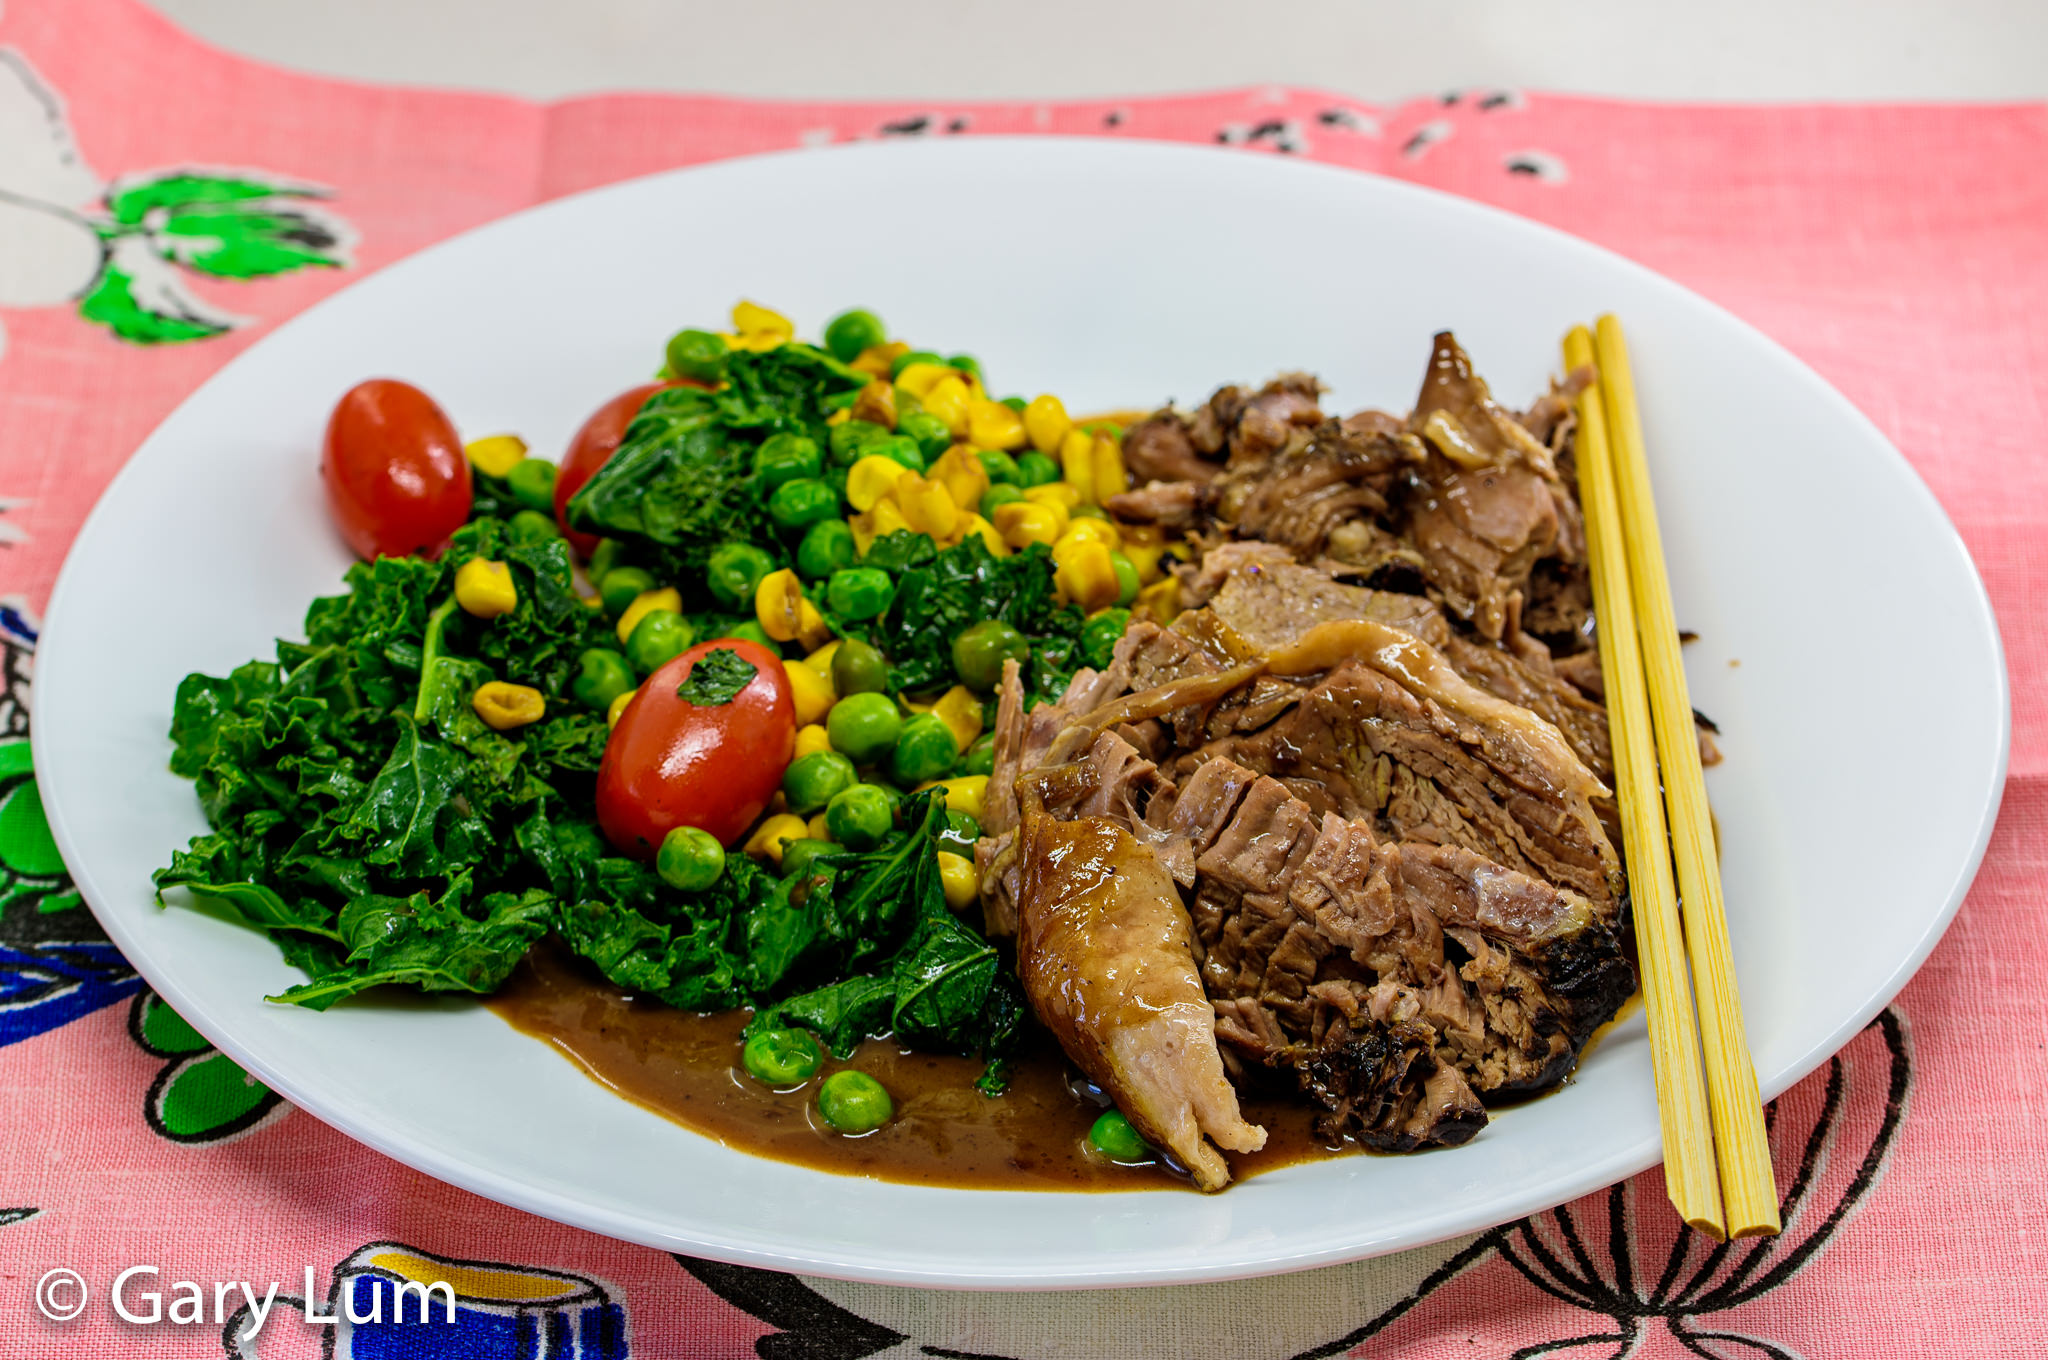 Slowly cooked lamb leg with kale, peas, corn, and tomatoes plus gravy. Gary Lum.